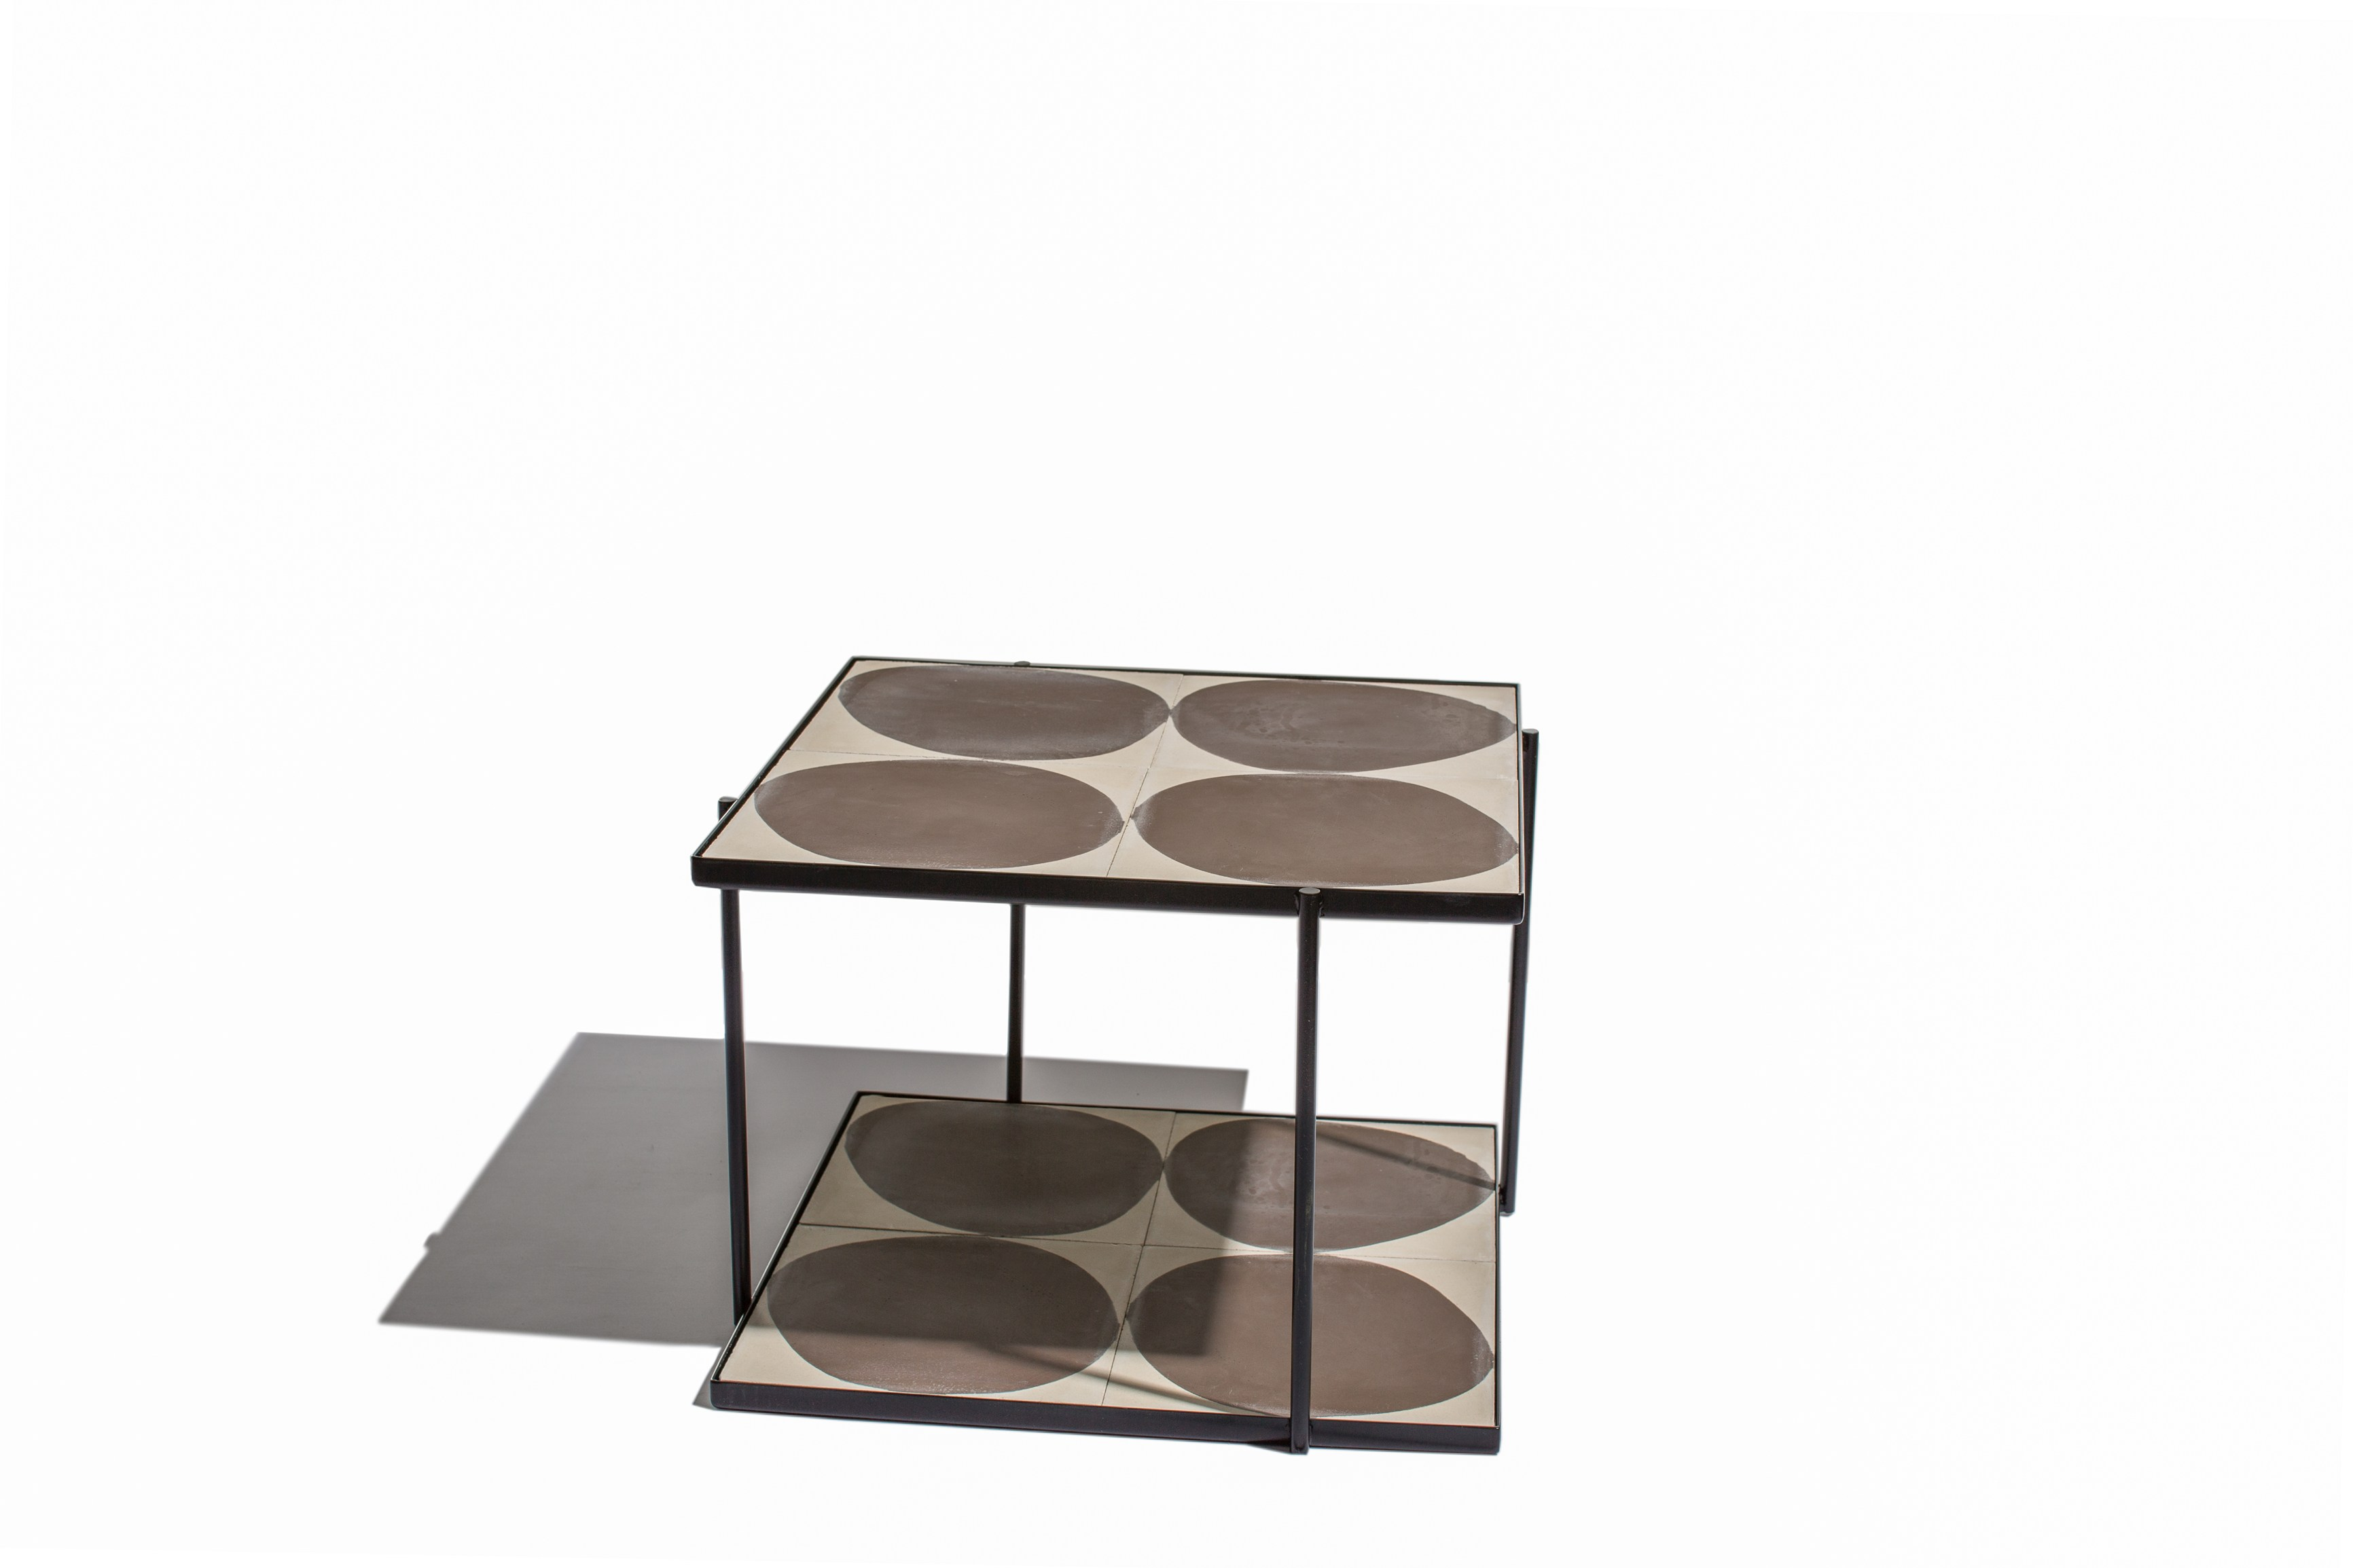 Marrakech Low Coffee Table By Skargaarden Design Claesson Koivisto Rune